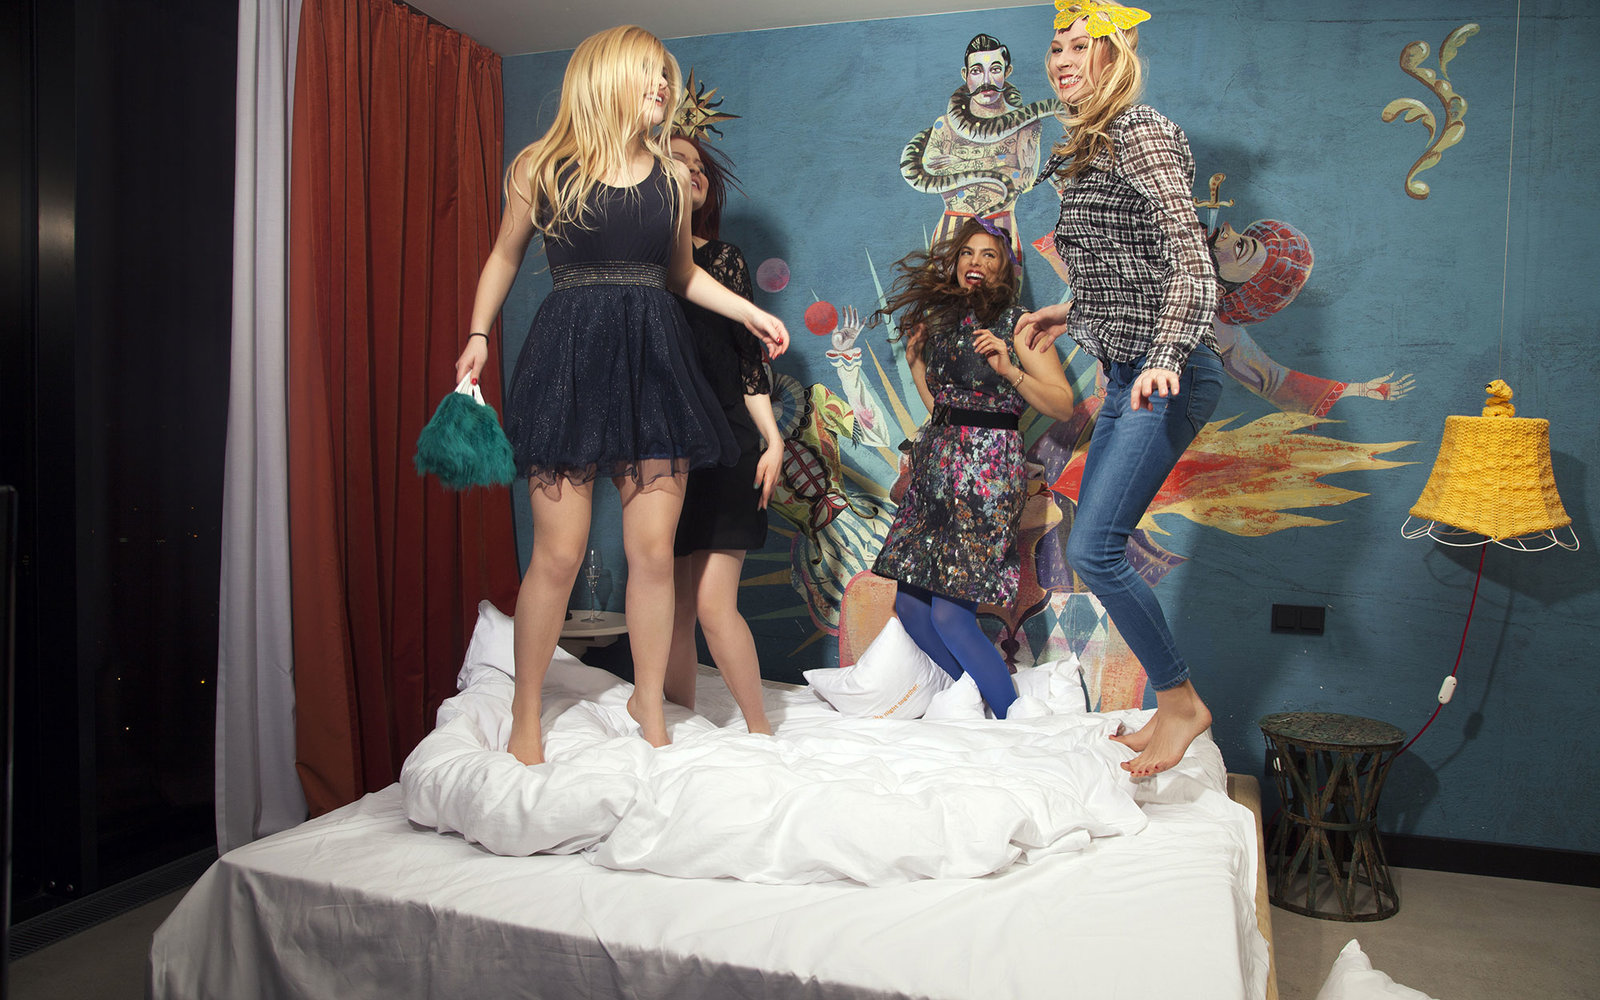 Four young women friends dancing on hotel bed